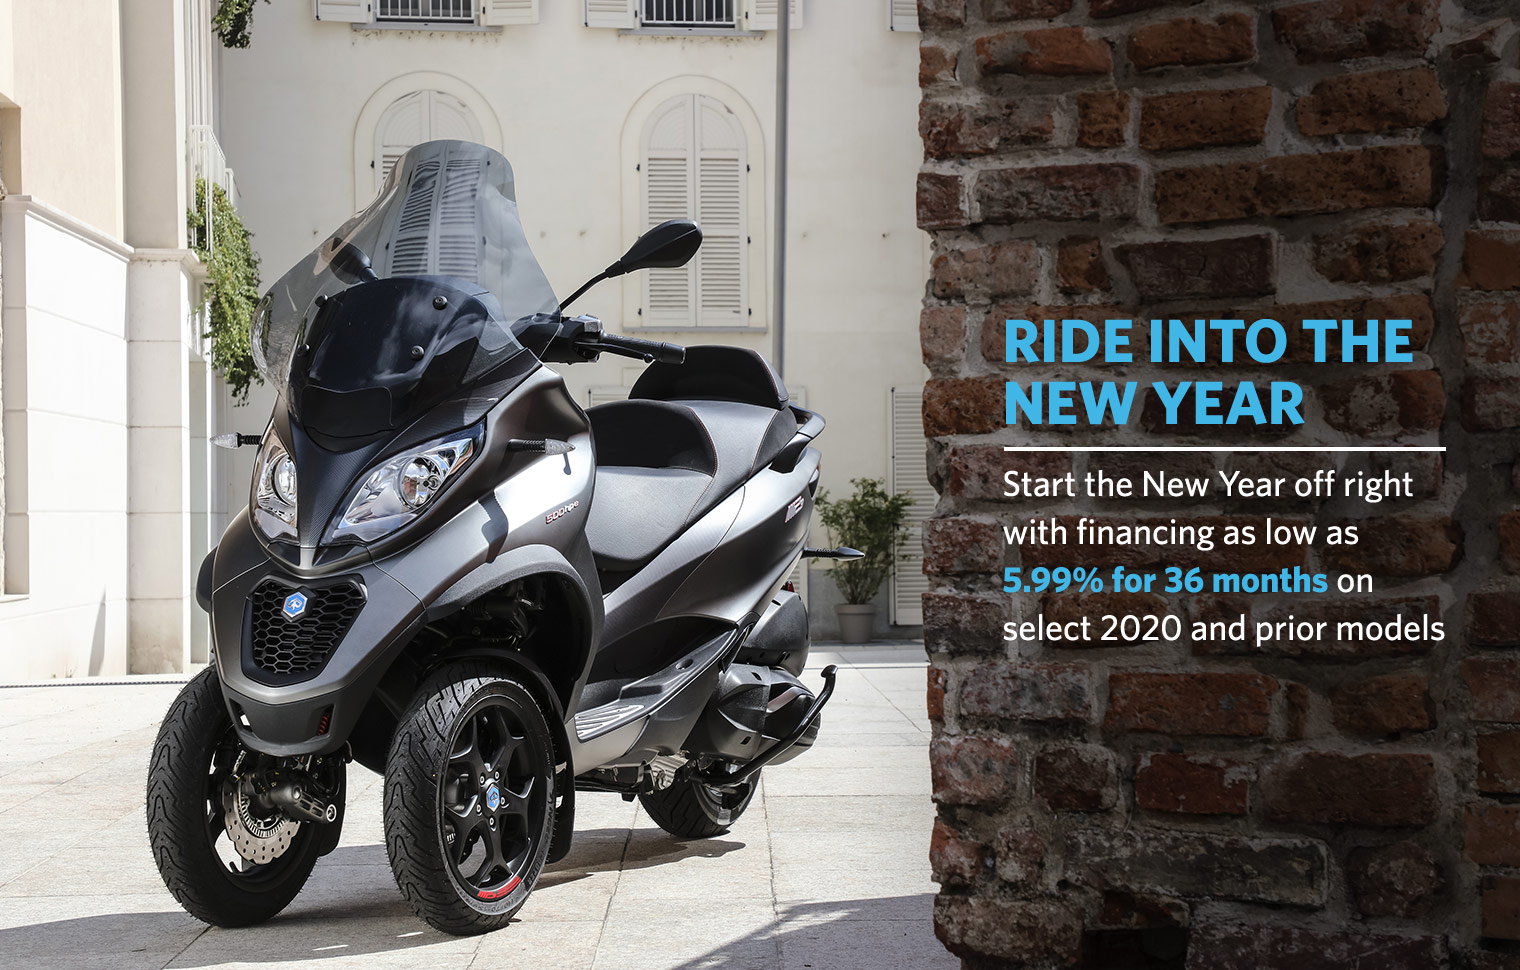 Piaggio The Official Website Piaggio Com